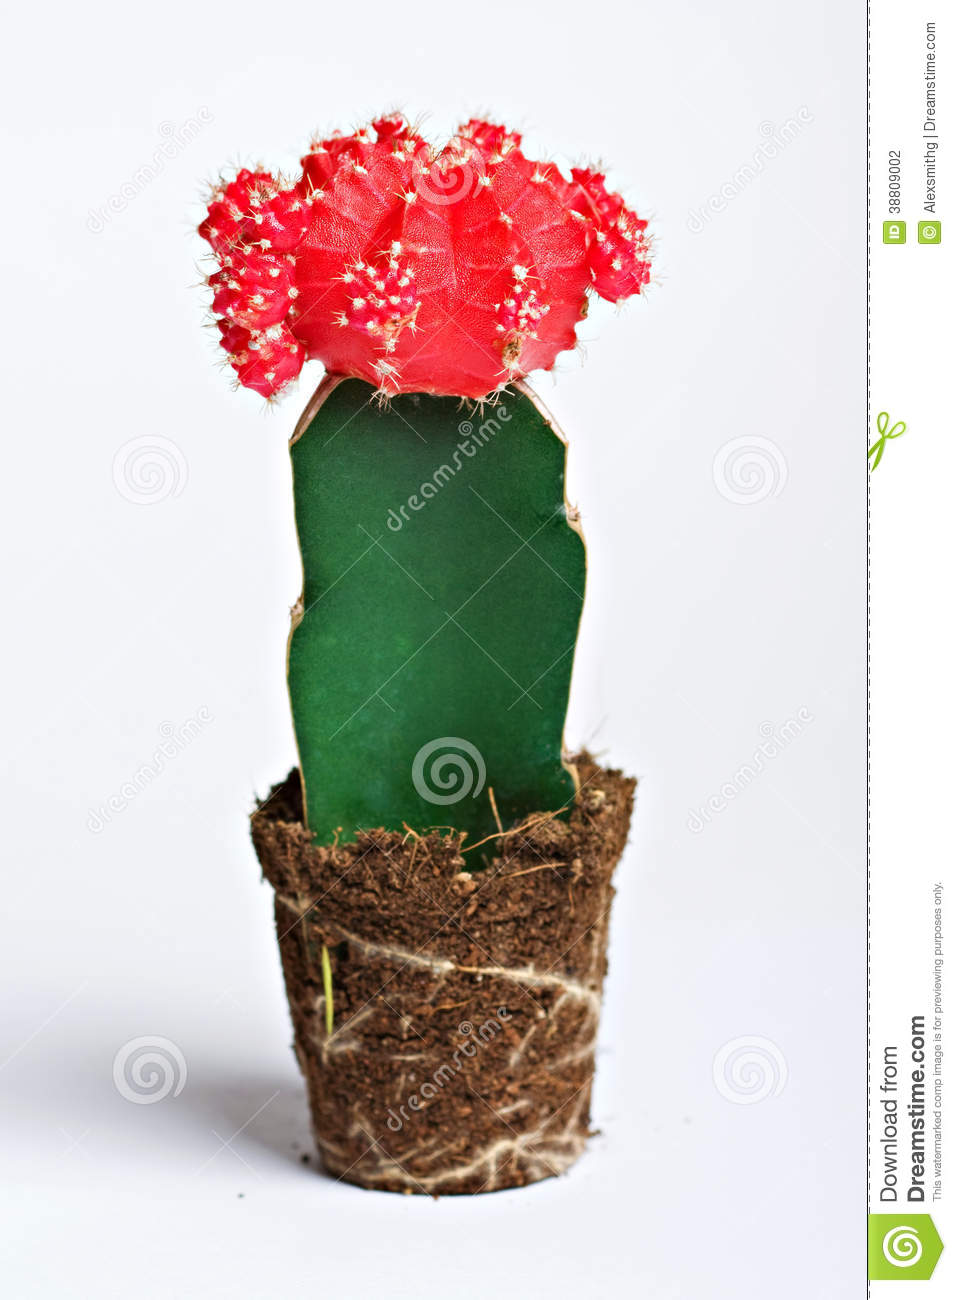 Cactus Avec La Fleur Rouge Photo Stock Image Du Salete 38809002